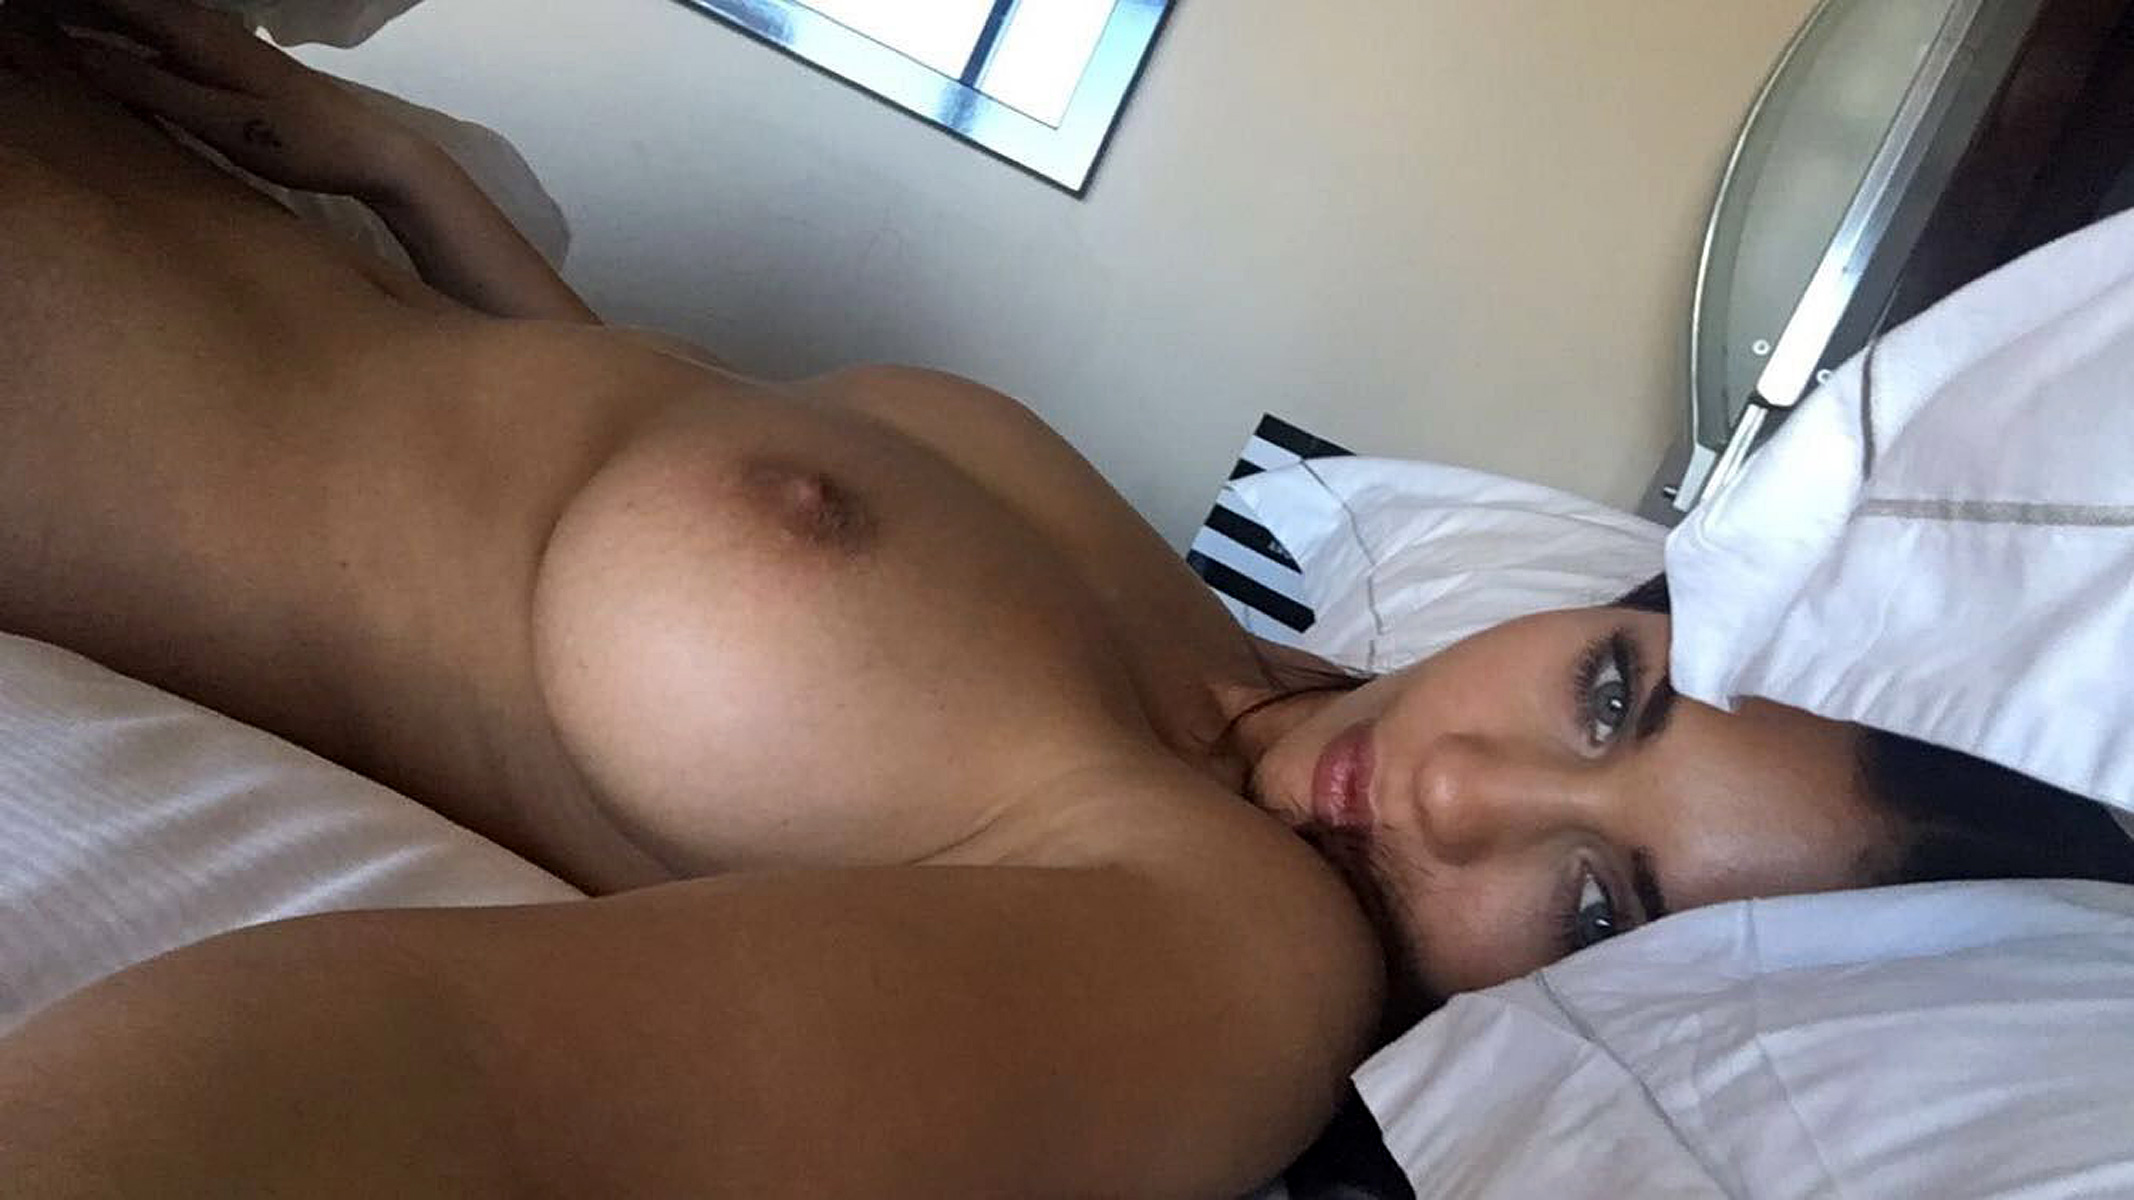 Bad Facebook selfies porno this remarkable